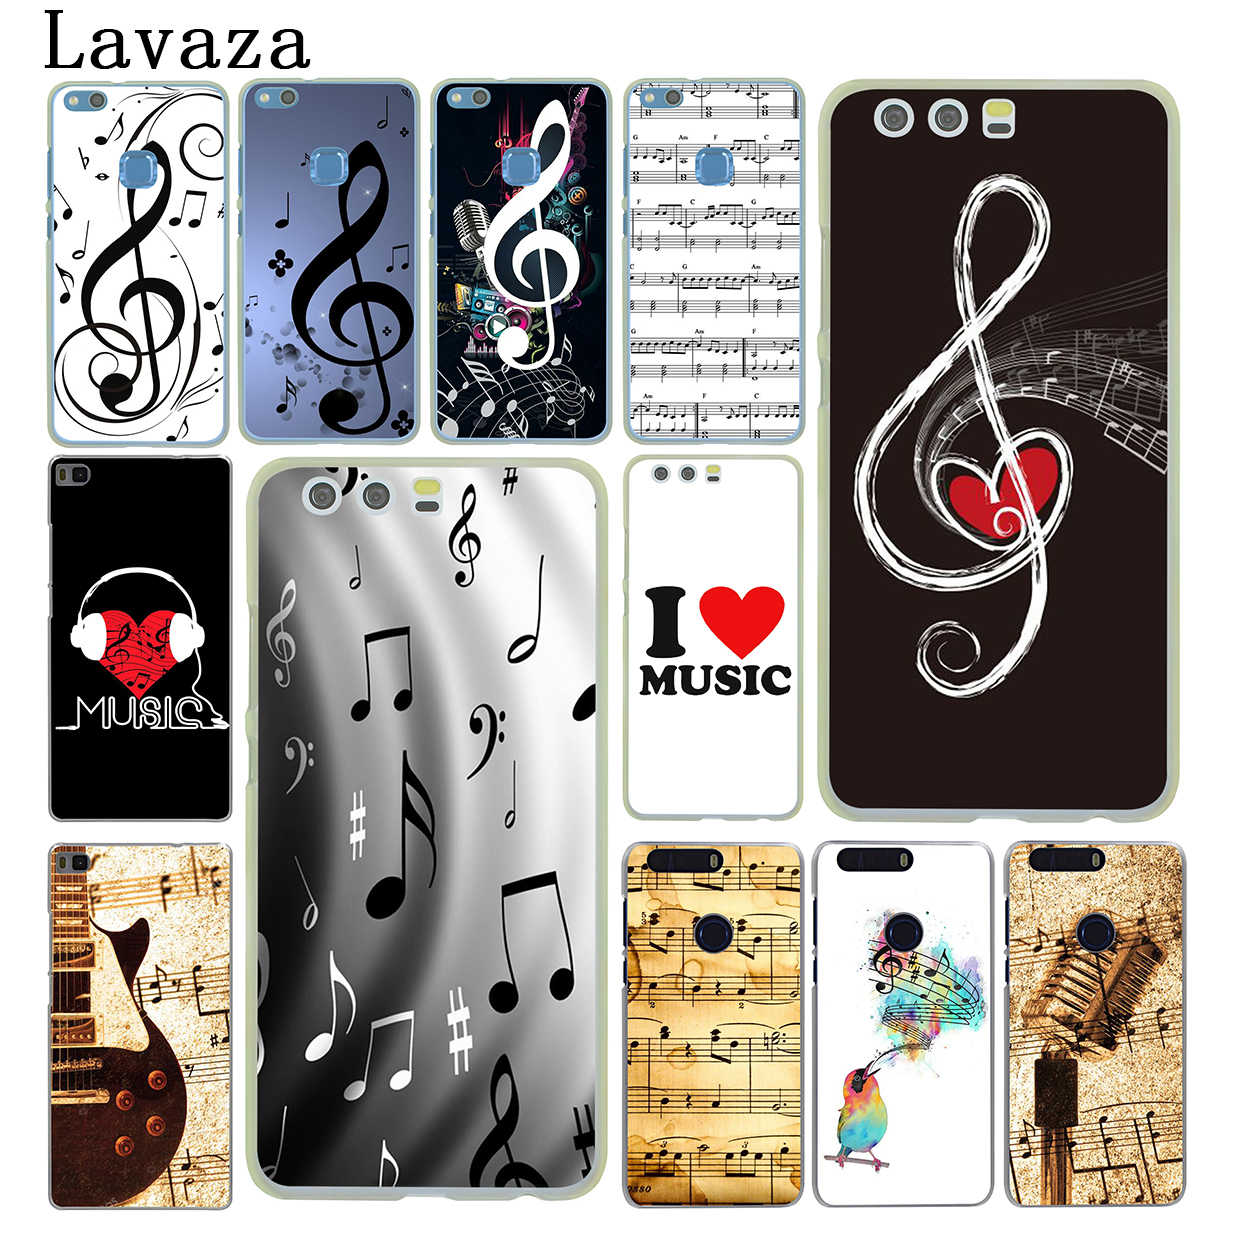 Lavaza old musical note Hard Phone Cover for Huawei P8 P9 P10 P20 P30 Lite Plus P20 P30 Pro P smart 2019 Case